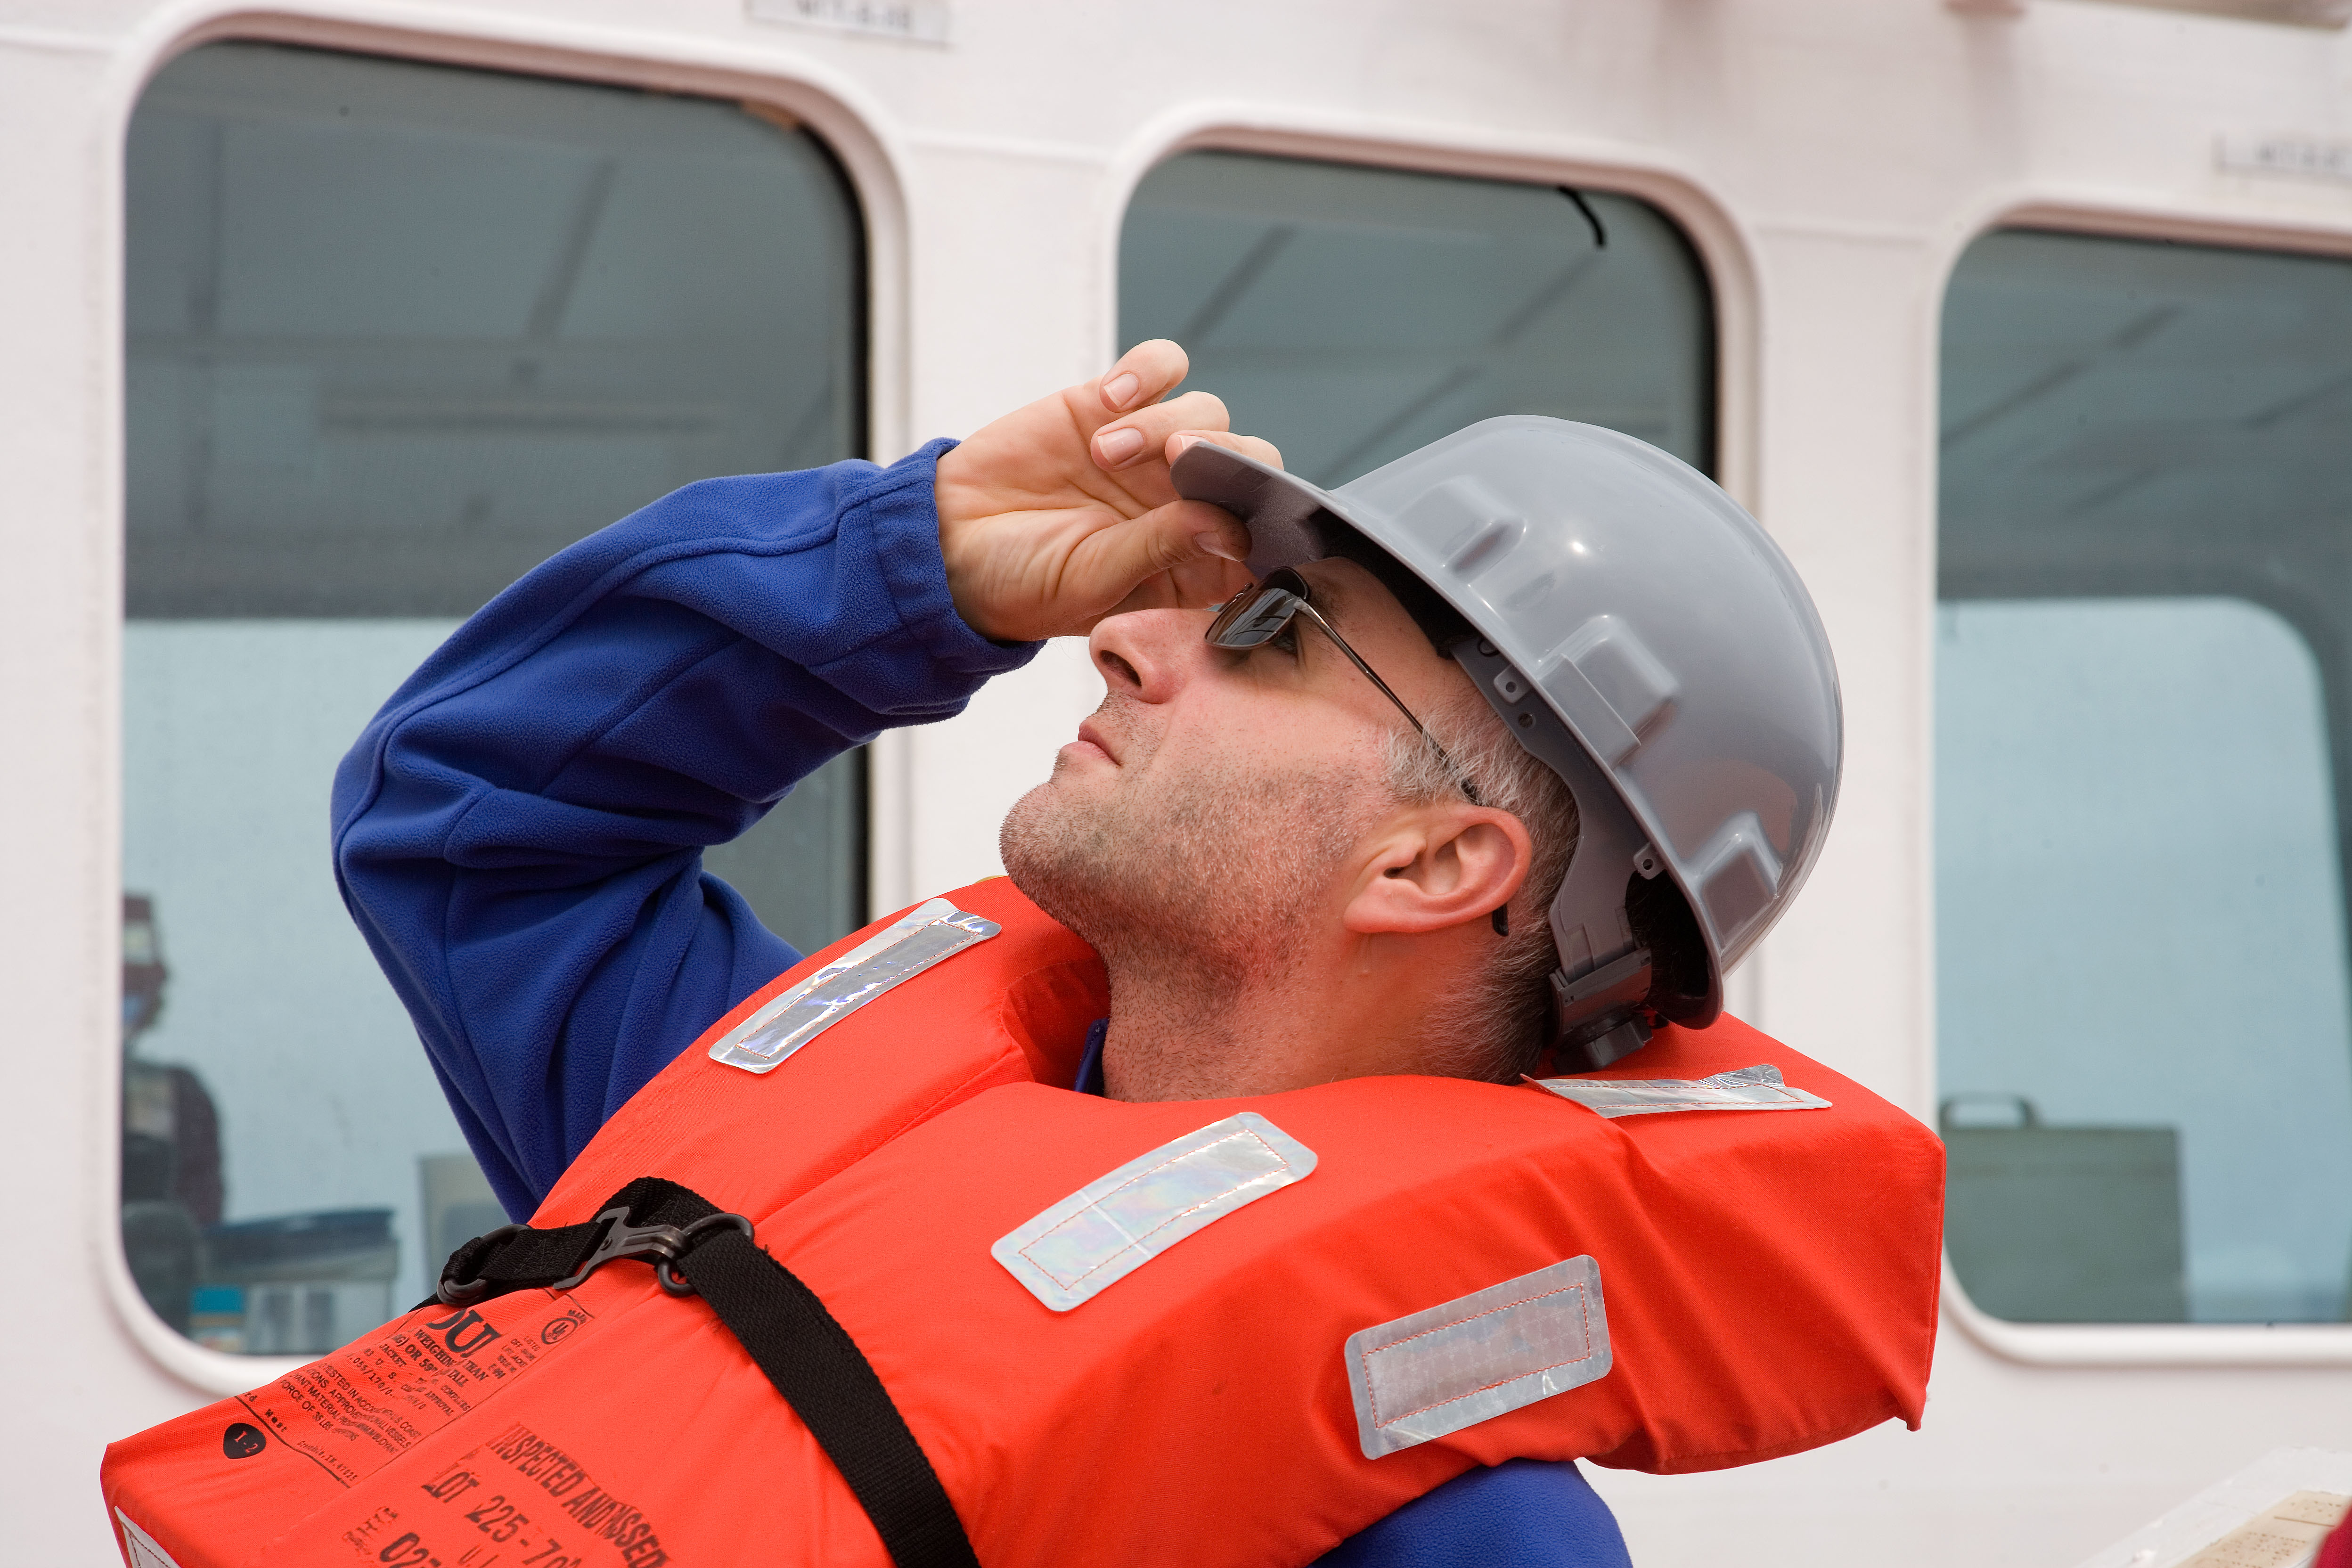 Ivano Aiello, sedimentologist reacts to the rather loud ships horn that is sounded during weekly life boat drills